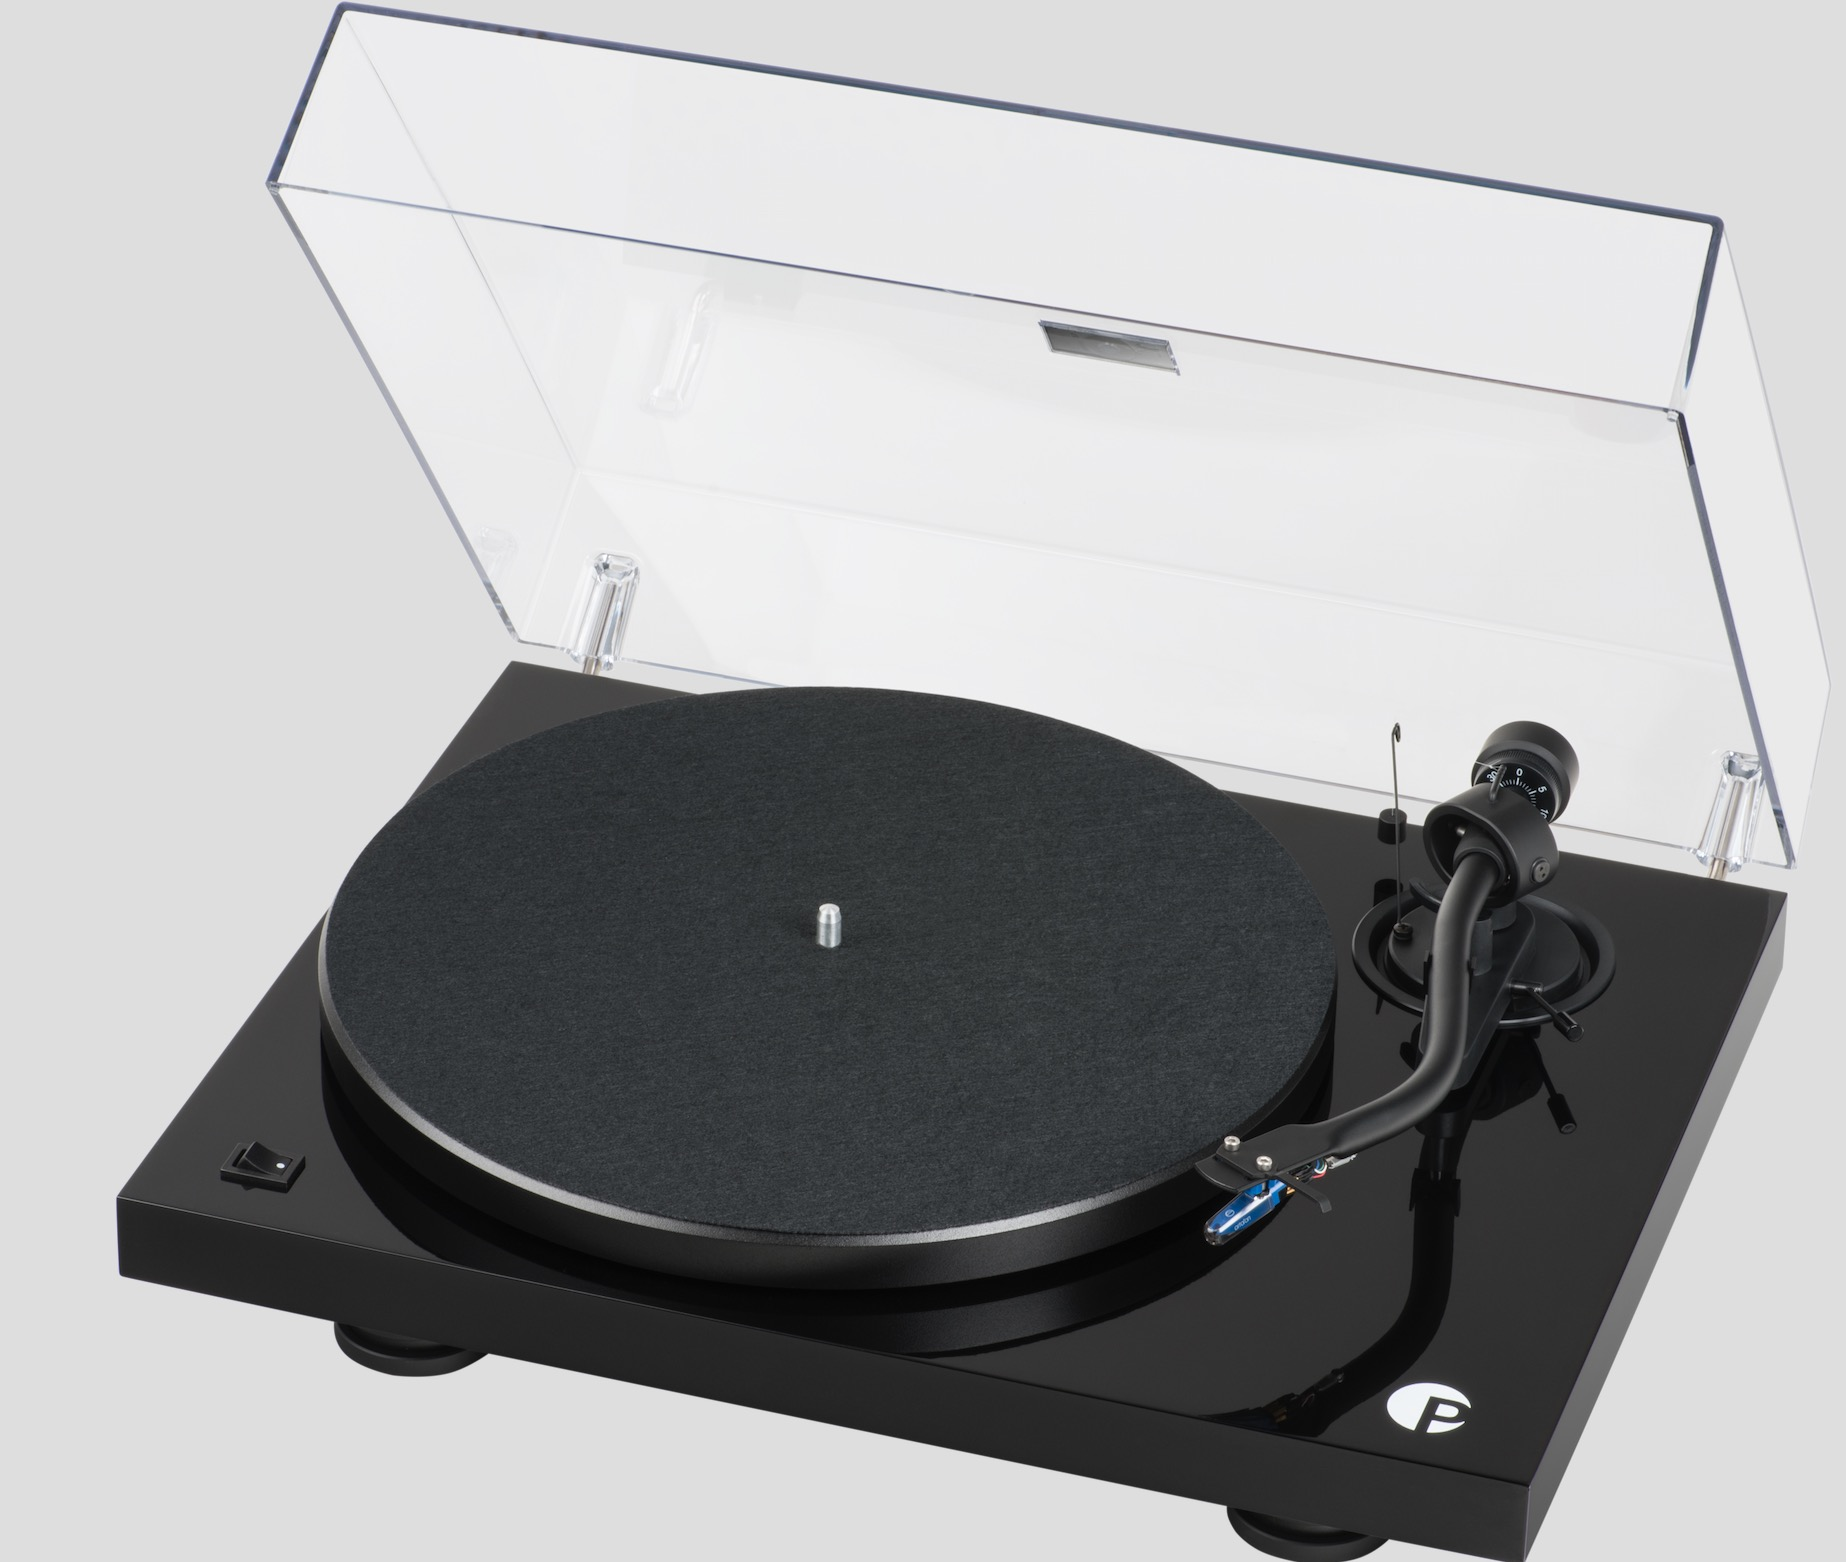 Pro-Ject Debut III S Audiophile: Let's Twist Again